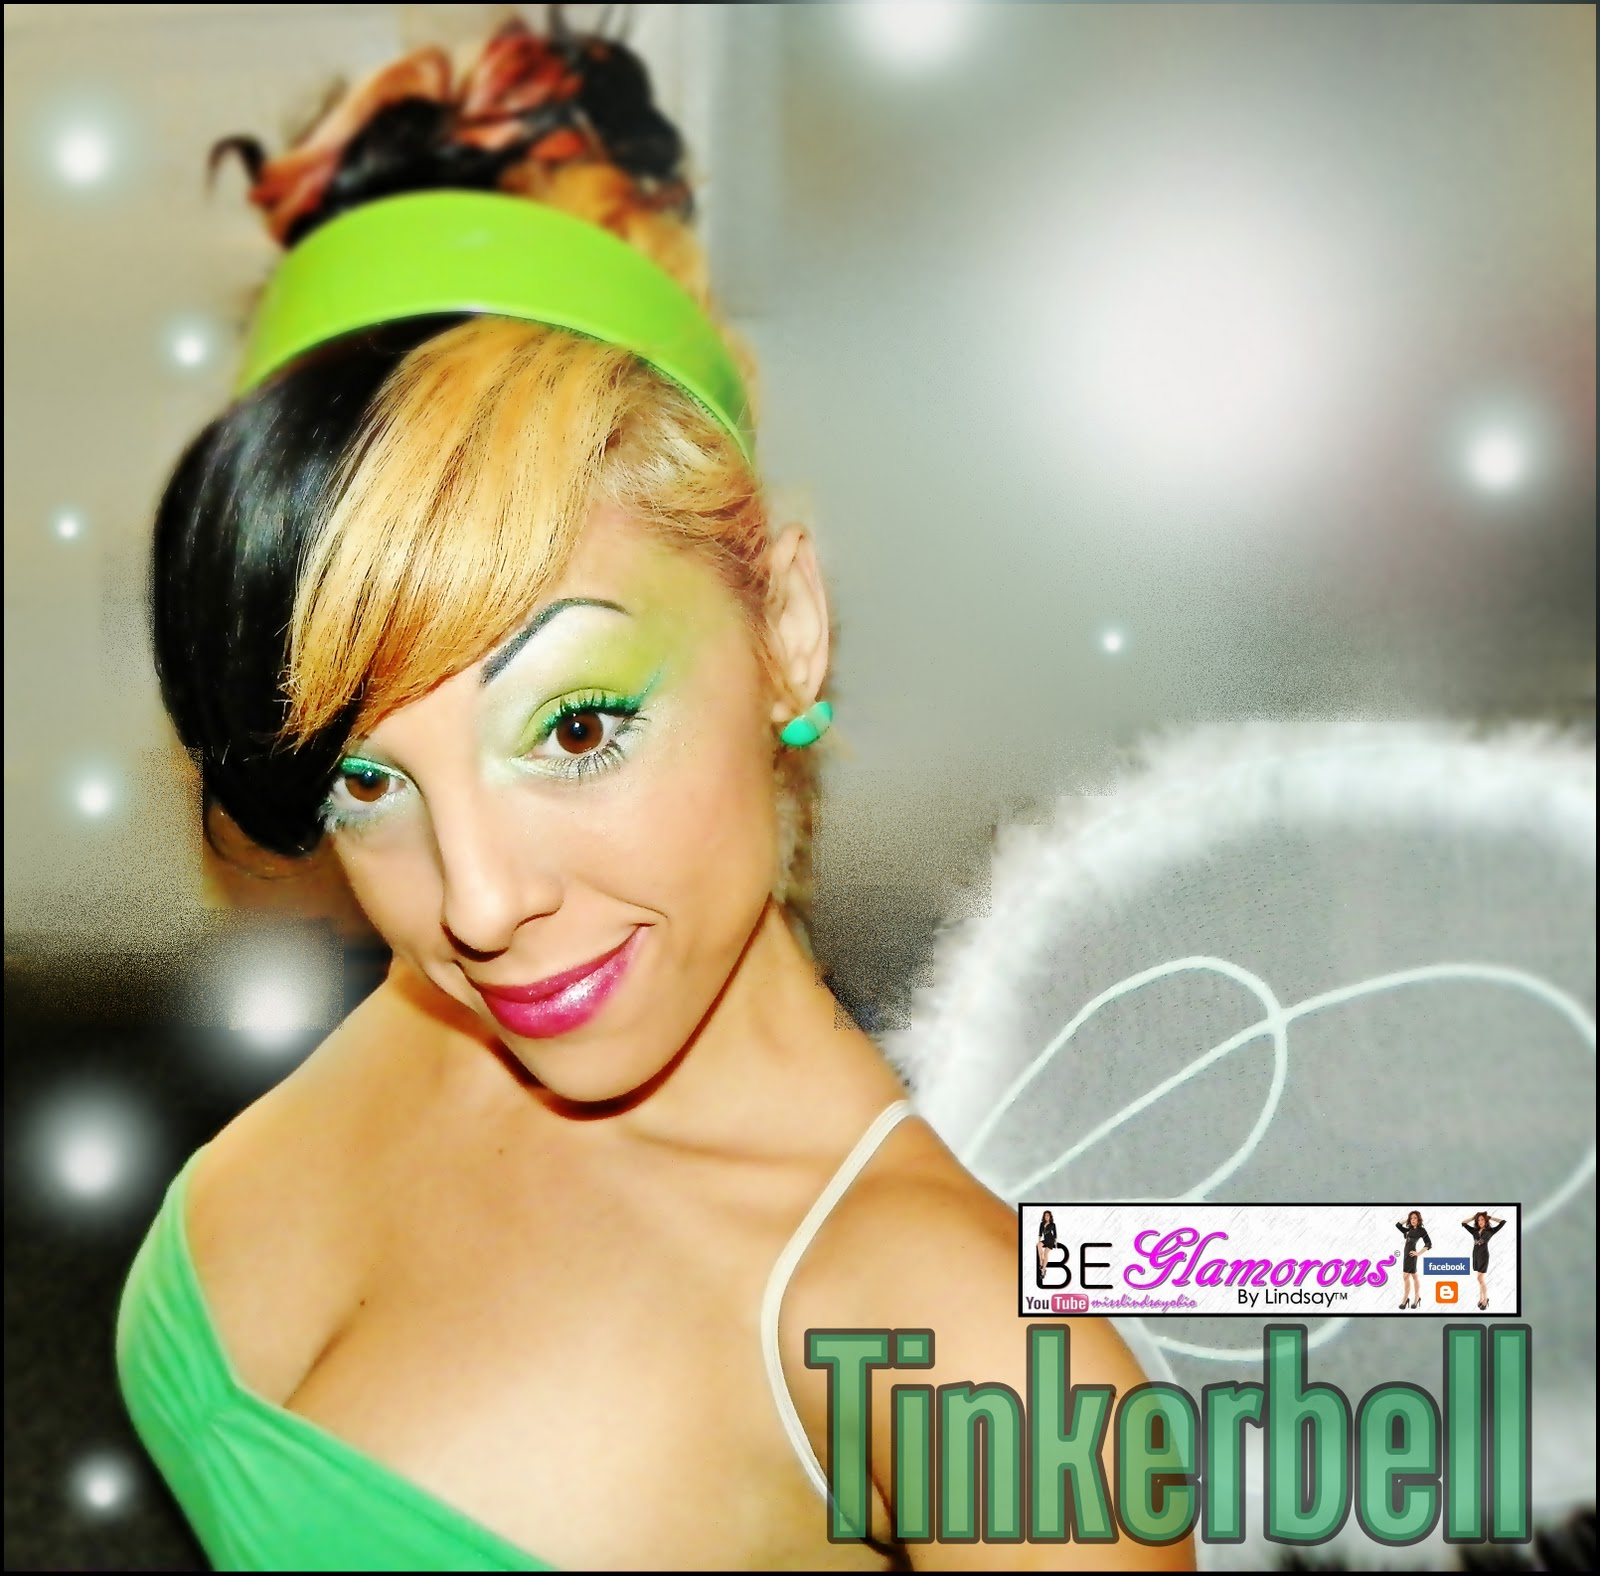 Be glamorous by lindsay green fairy makeup halloween tutorial green fairy makeup halloween tutorial inspired by tinkerbell baditri Image collections